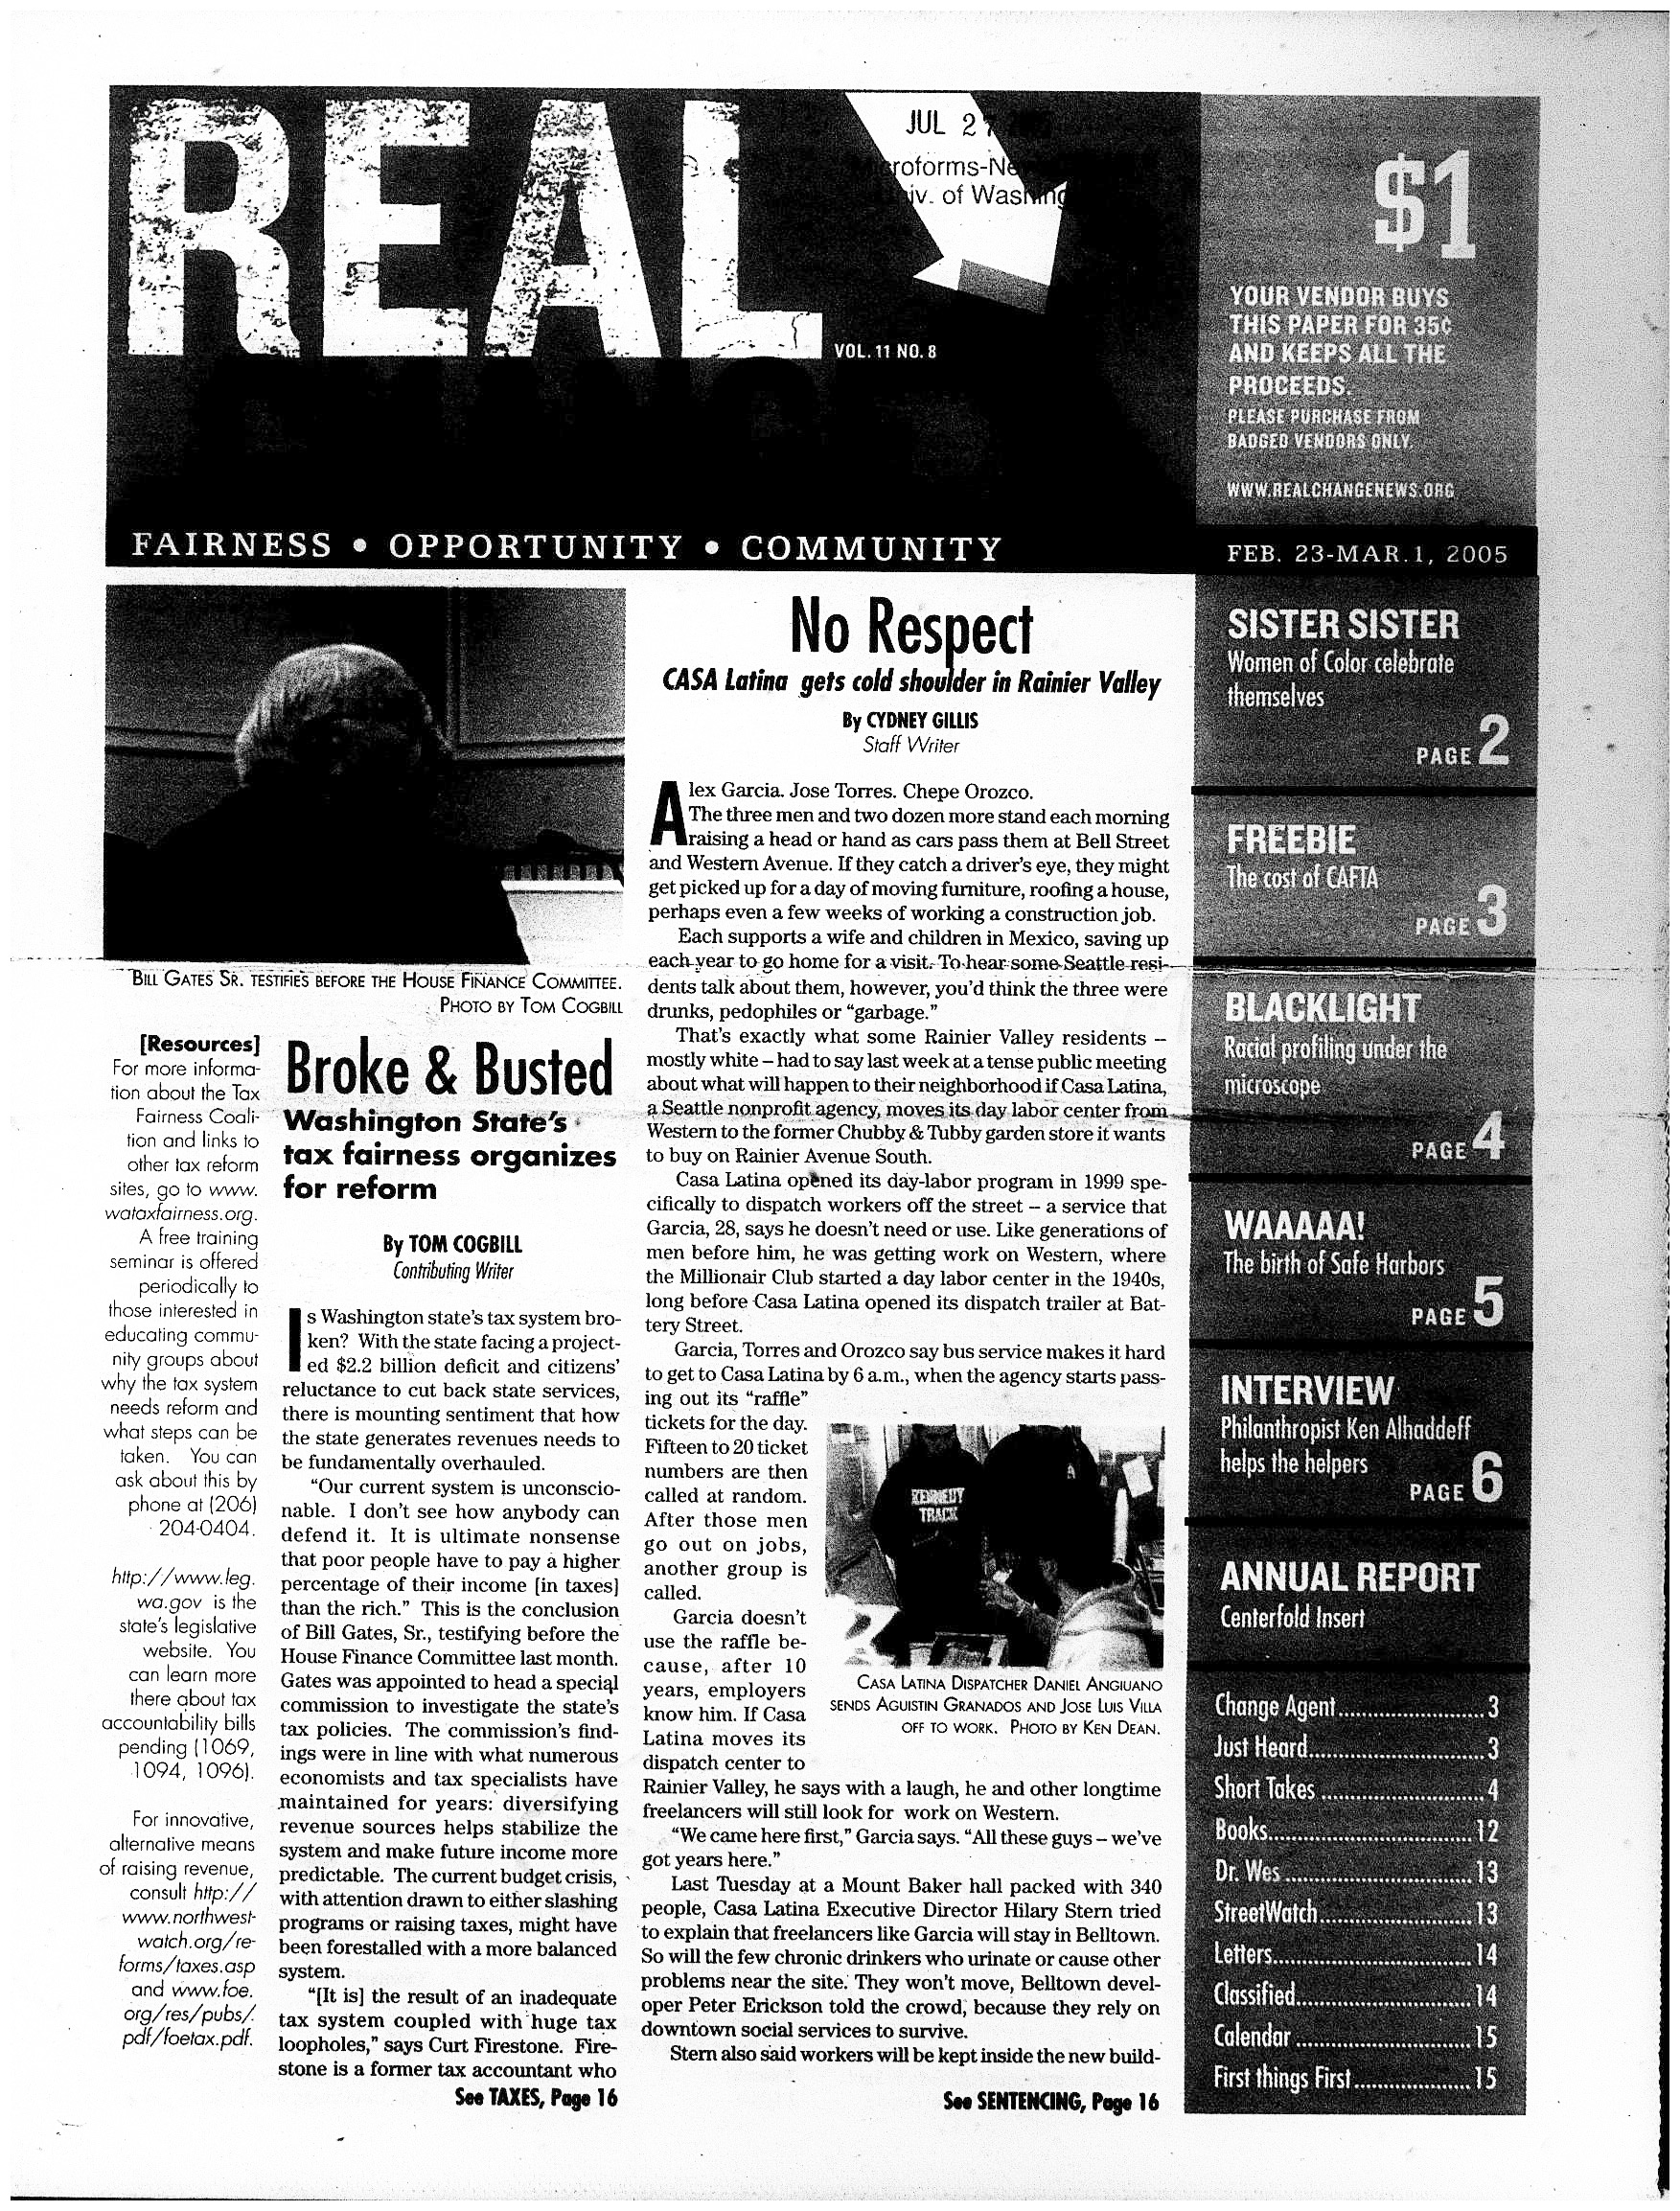 Table of Contents Feb 23, 2005 with pictures of entire issue